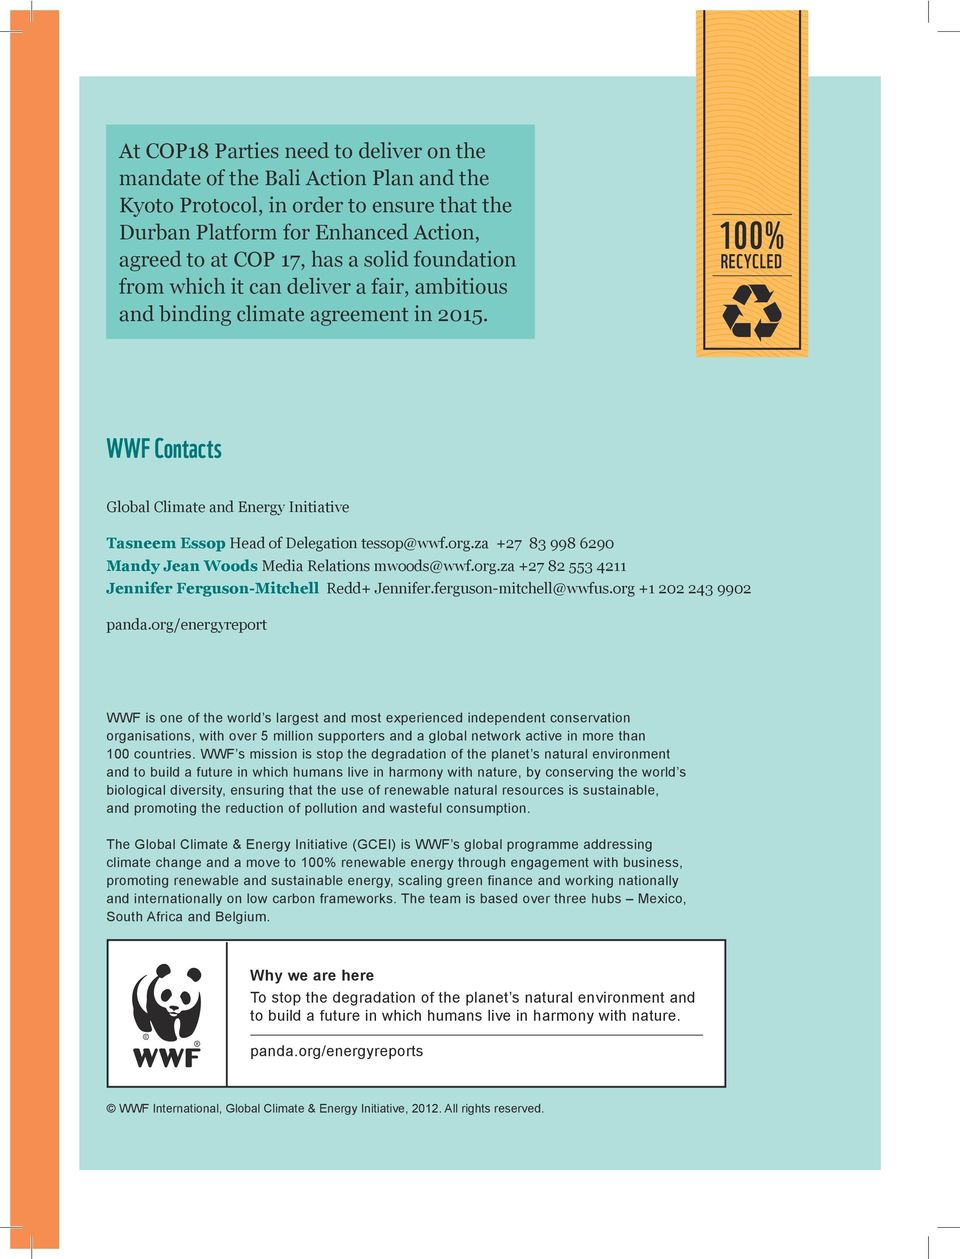 org/energyreport WWF is one of the world s largest and most experienced independent conservation organisations, with over 5 million supporters and a global network active in more than 100 countries.